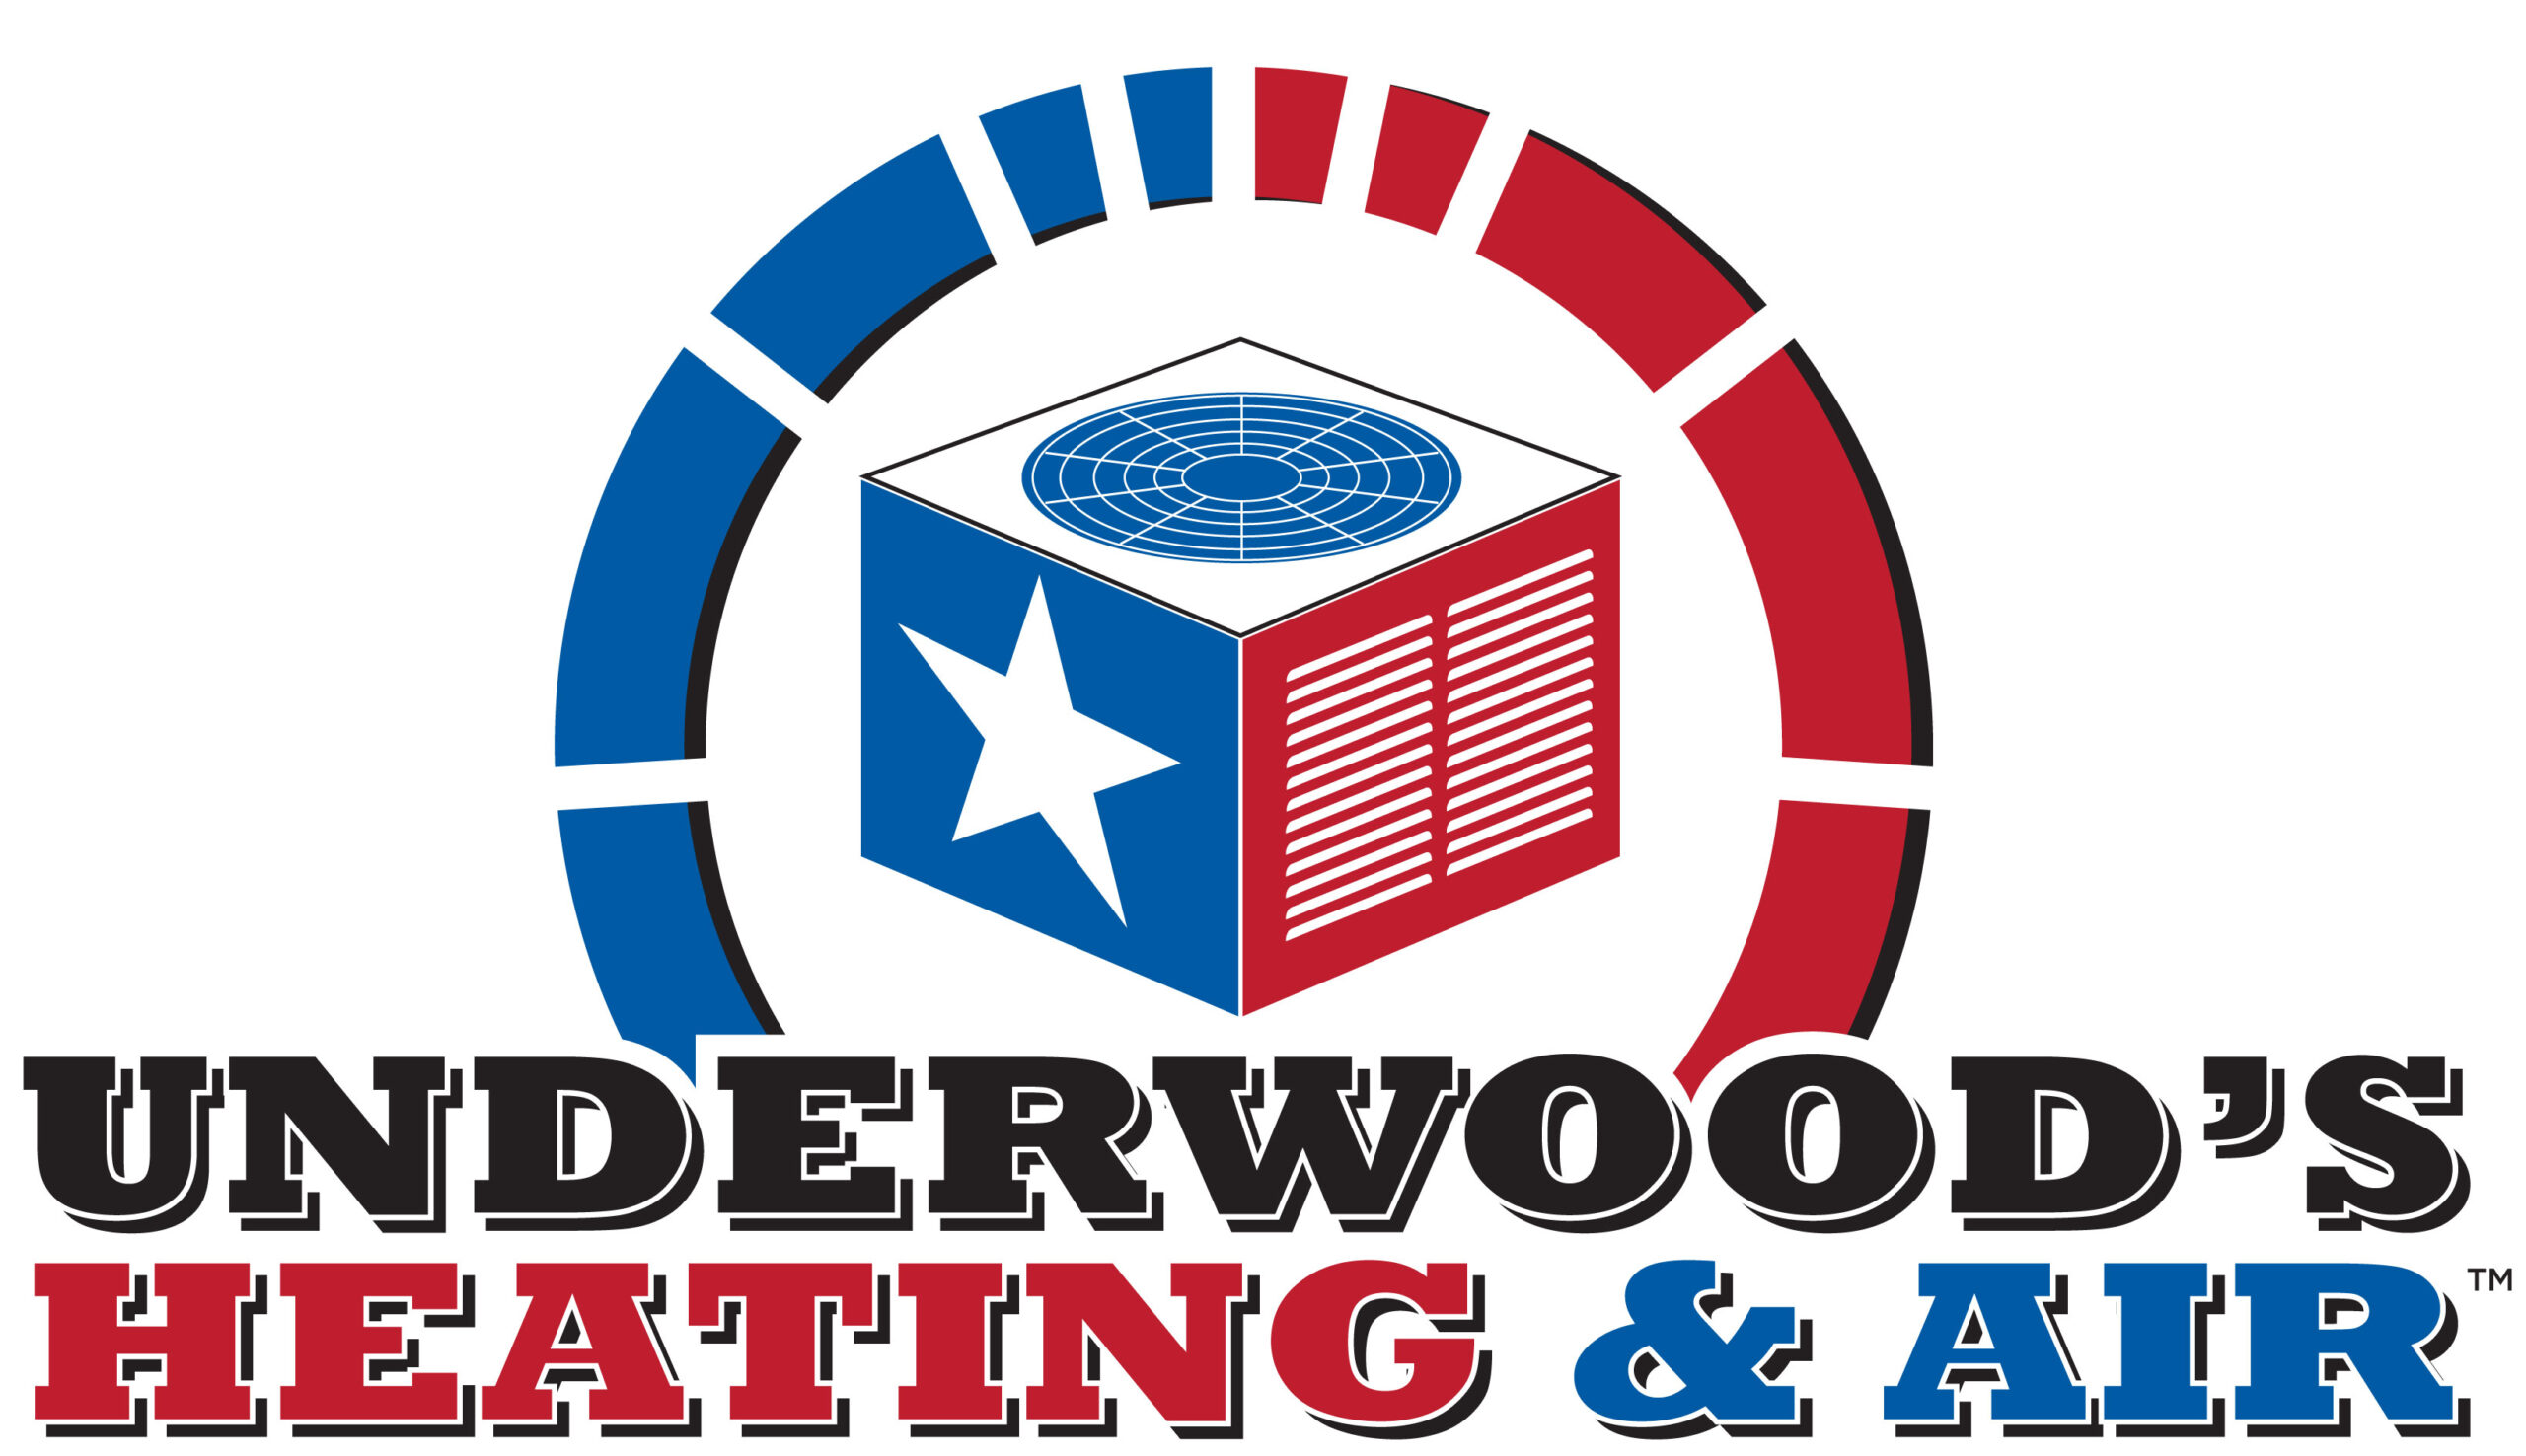 https://sangertexas.com/wp-content/uploads/2021/02/Underwoods-HVAC-LOGO-scaled.jpg